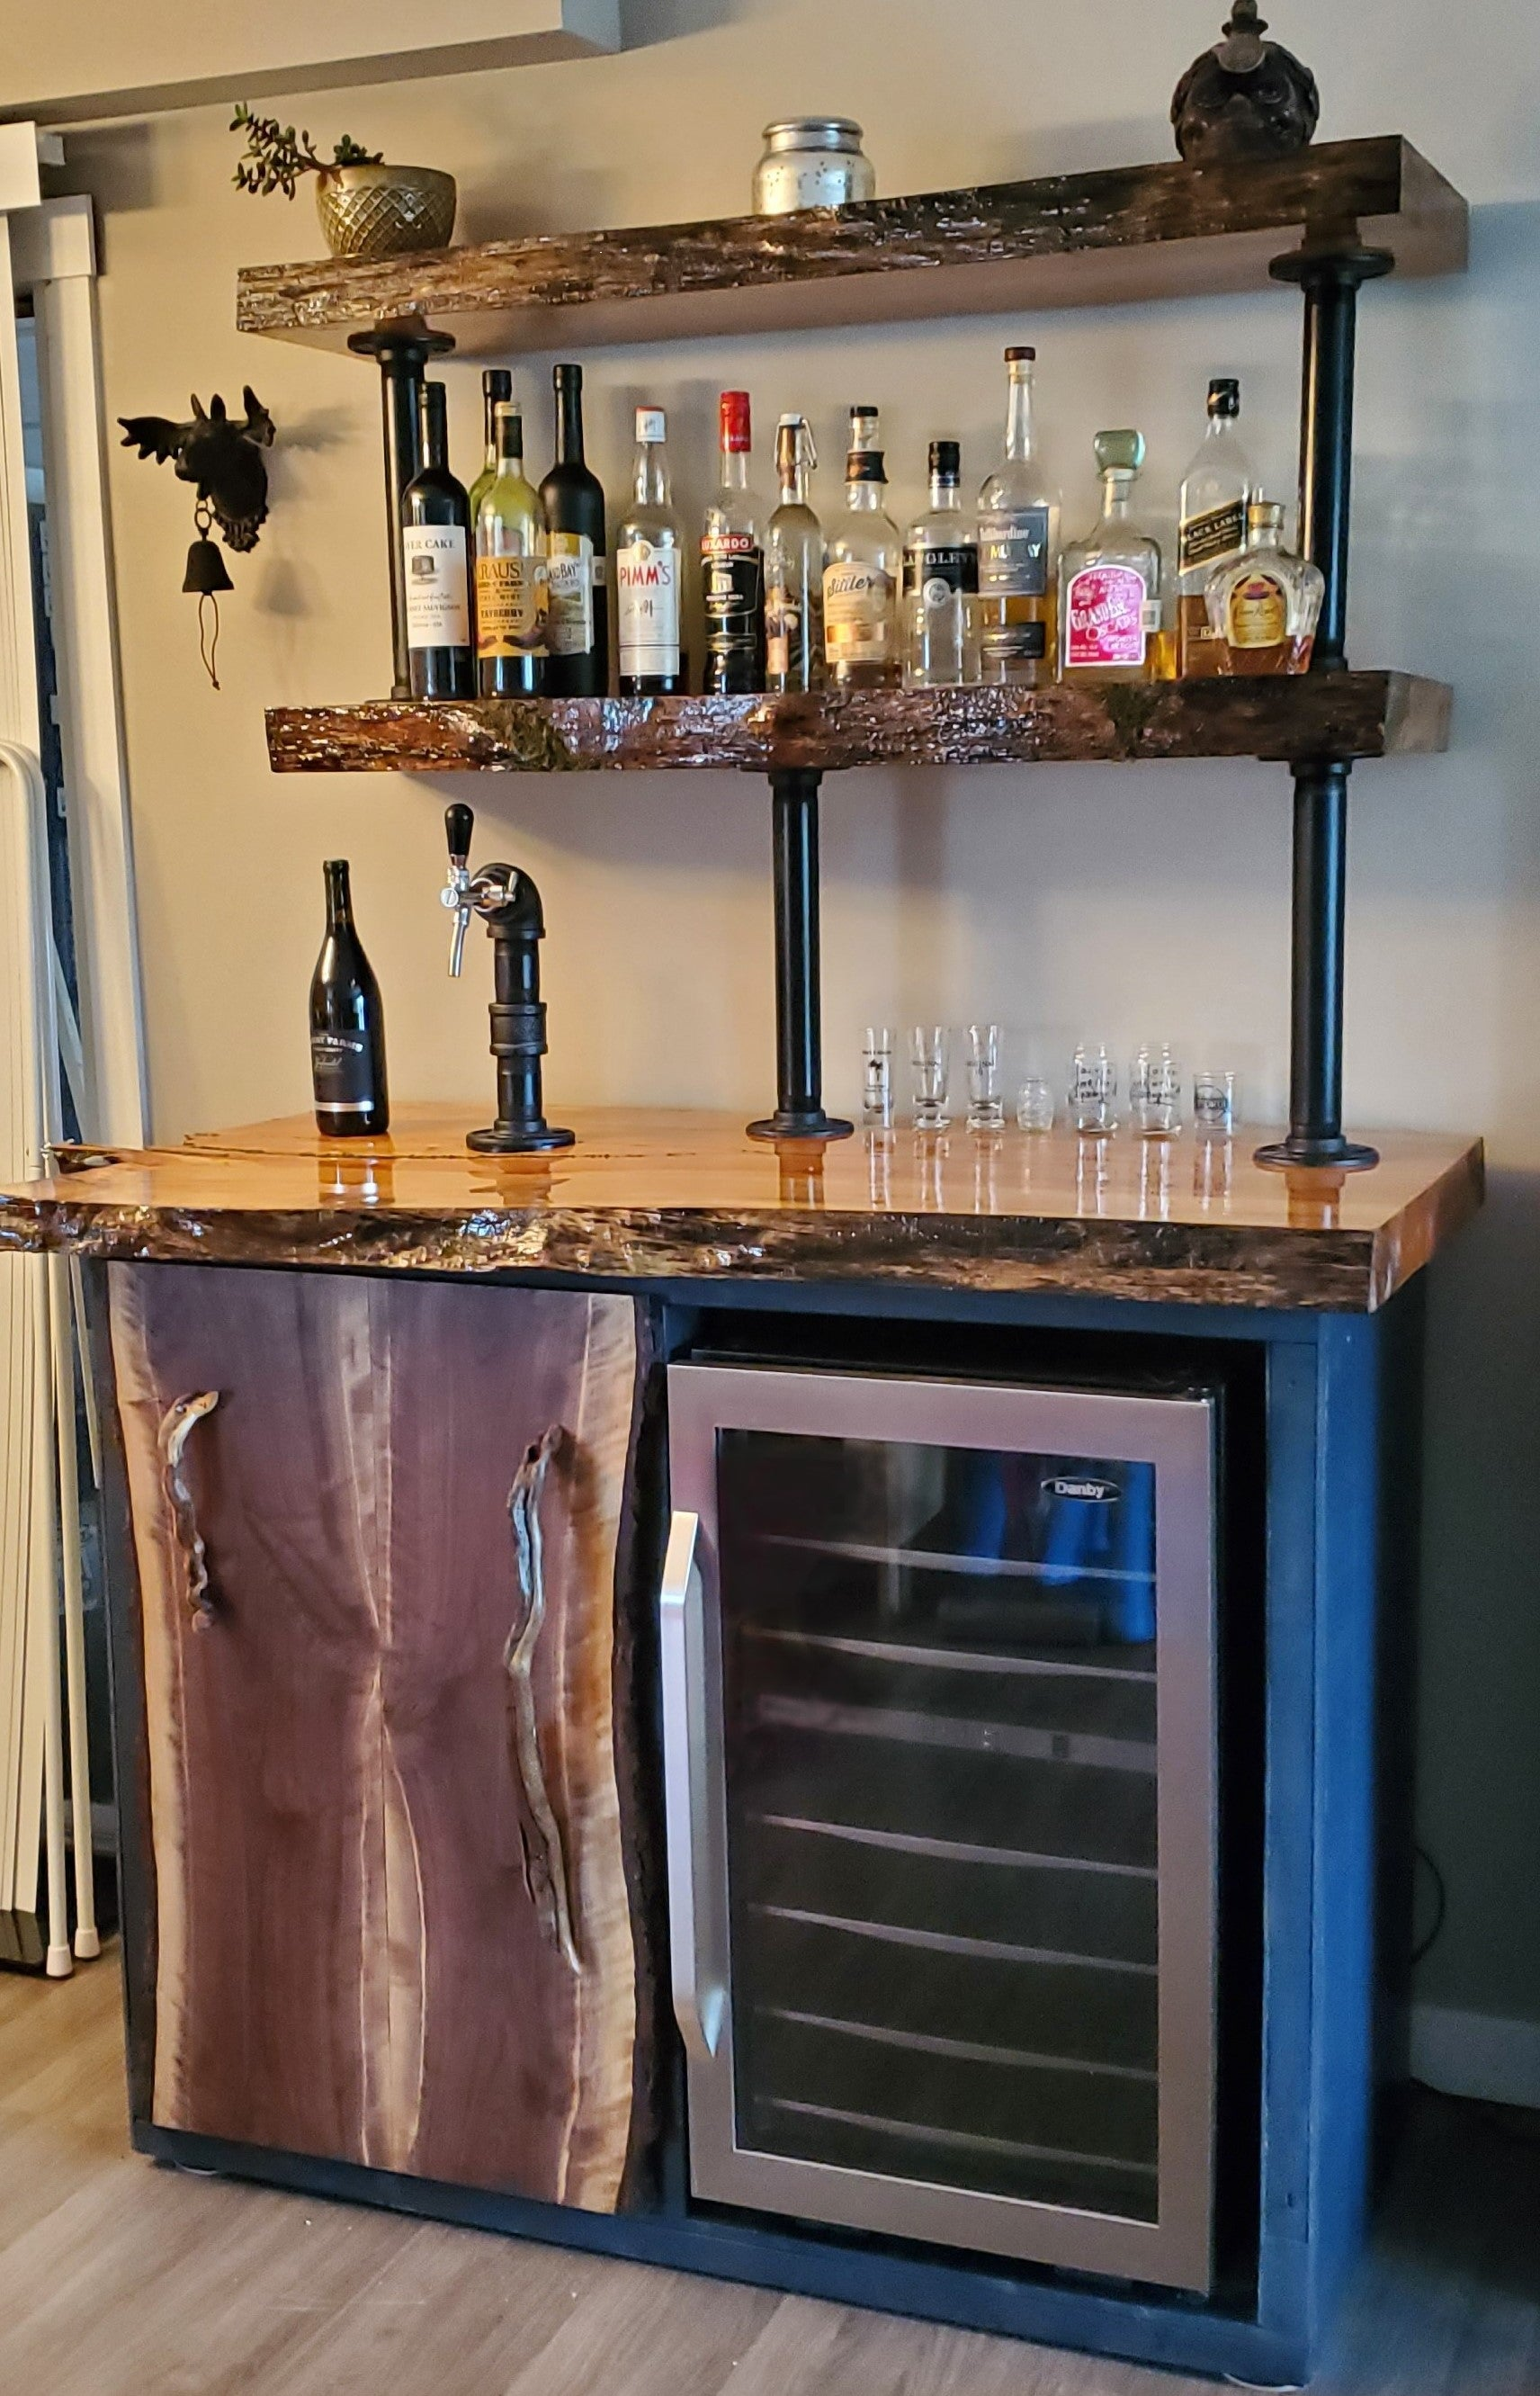 The Lid Lube Ultimate DIY Kegerator. Live Edge Maple with Inlaid Moss, Walnut Door and Wine Fridge!